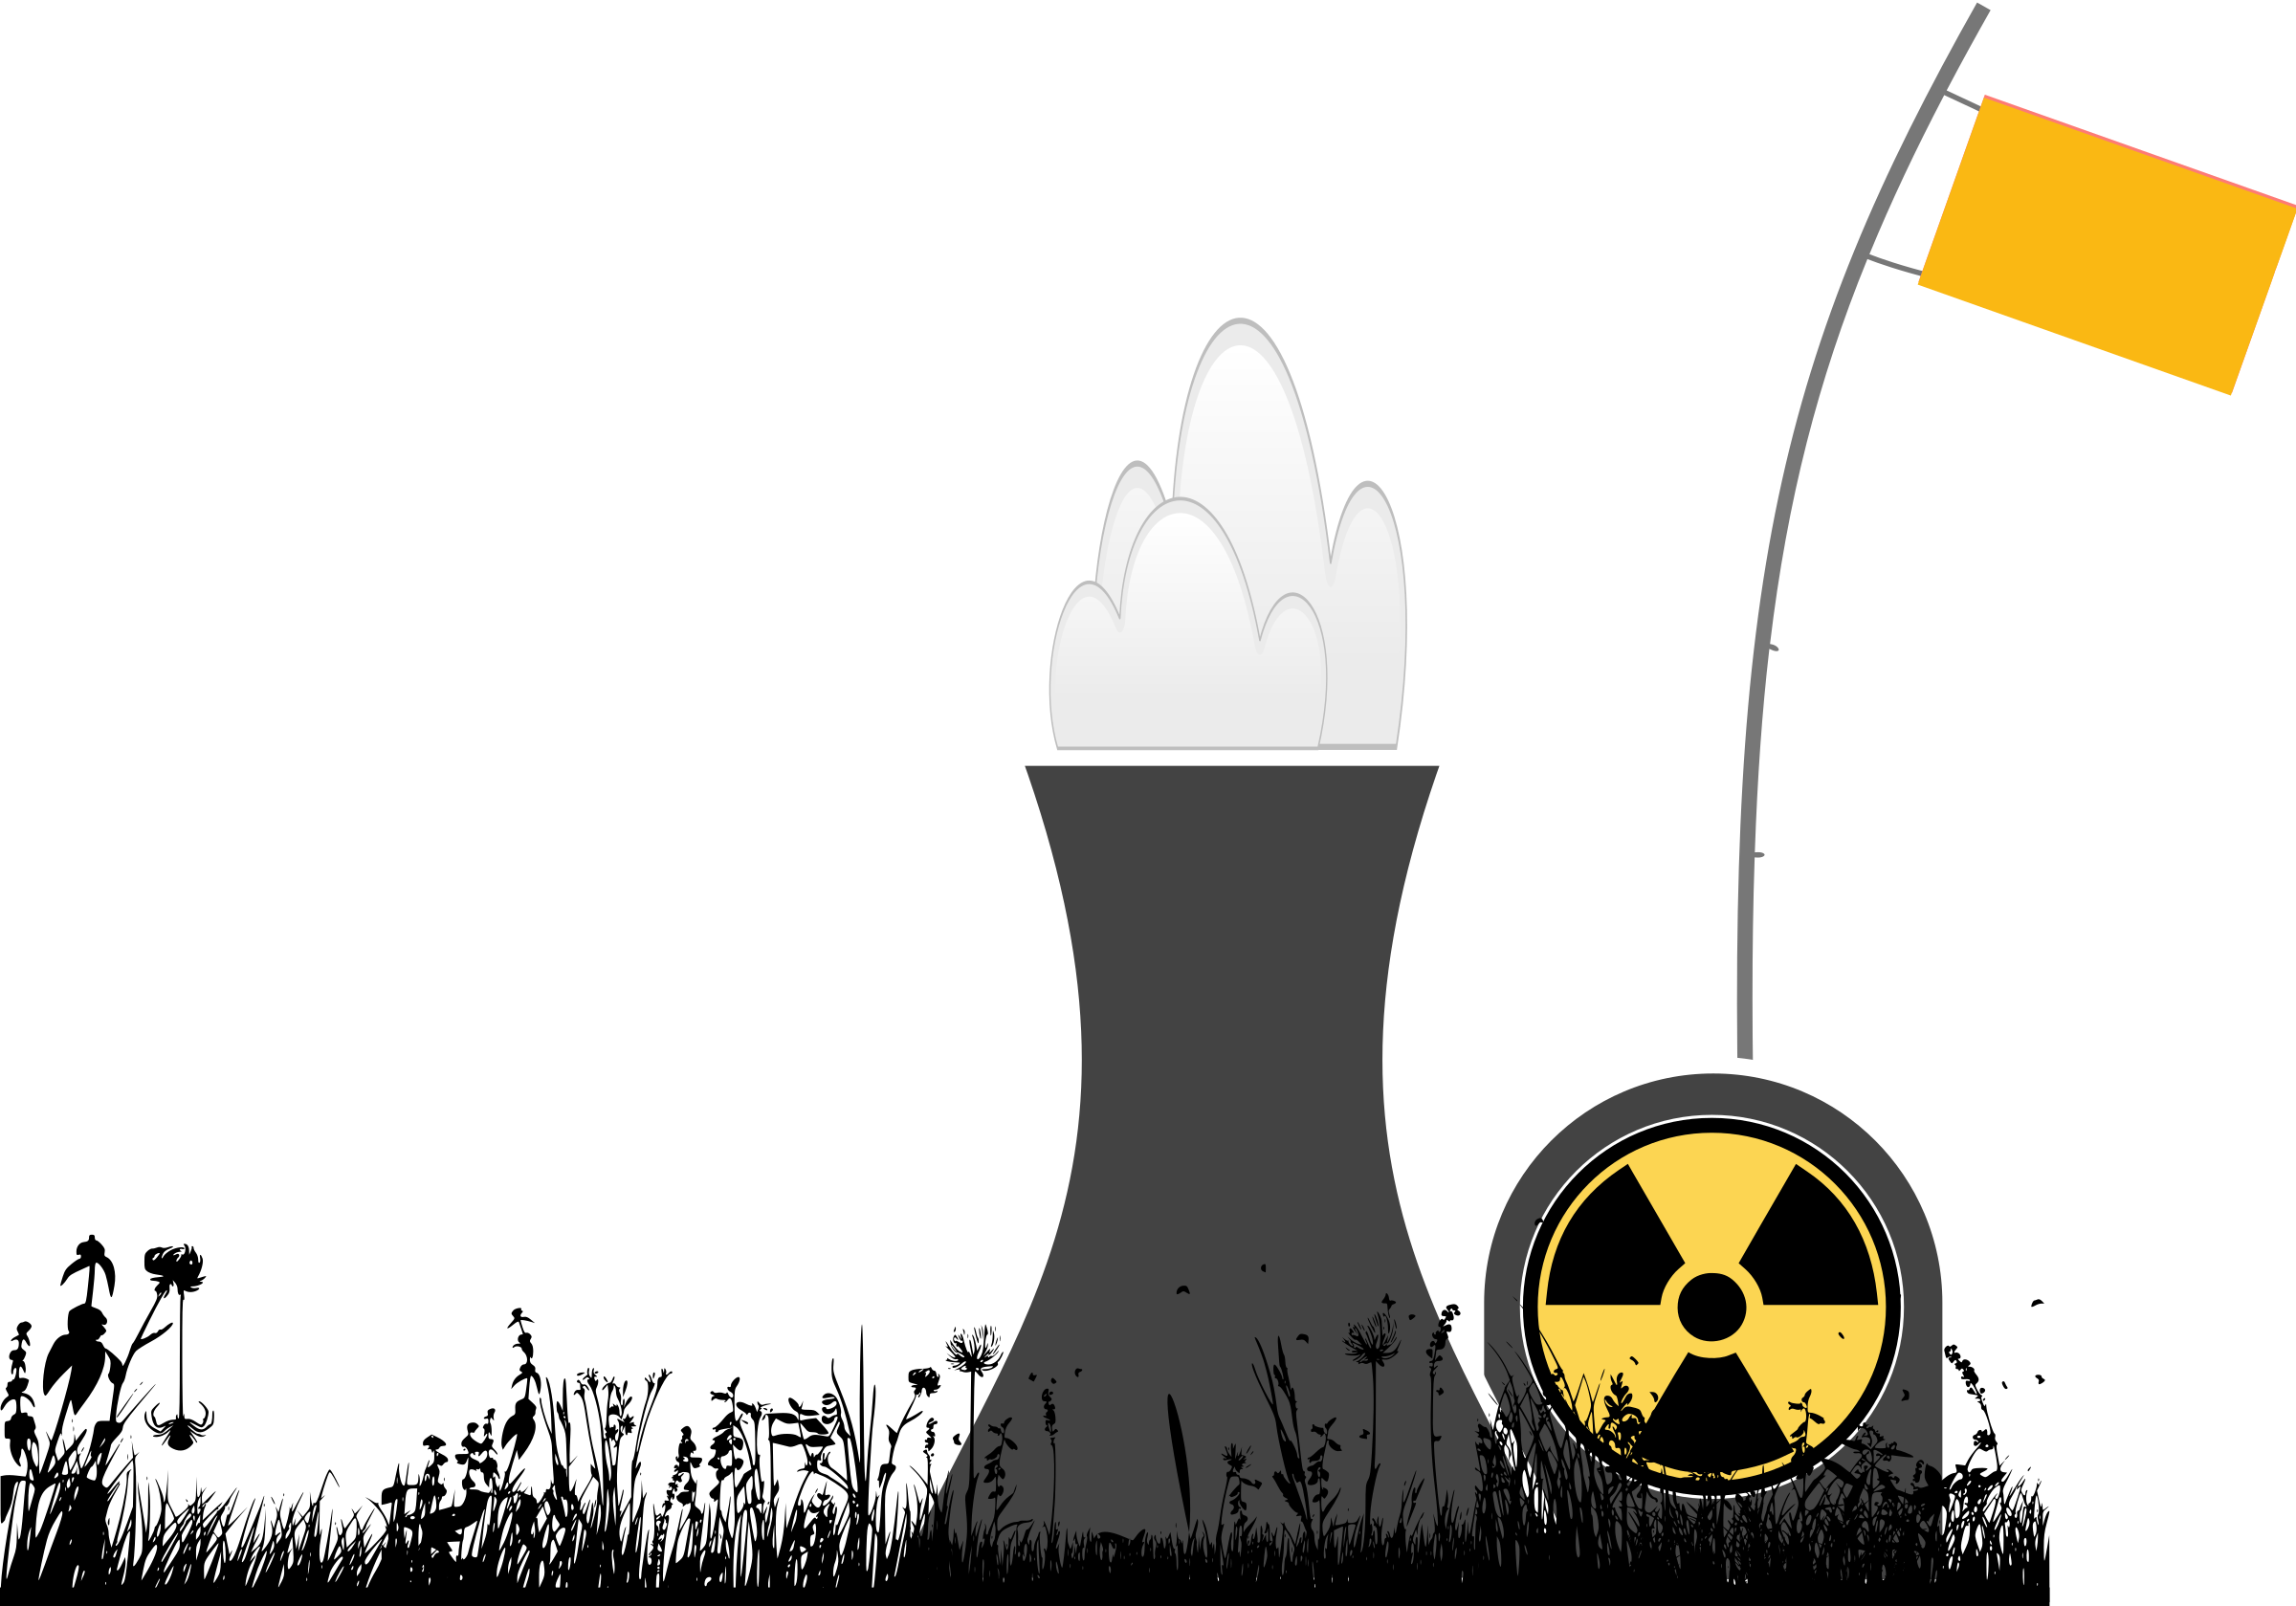 Explosions clipart nuclear power plant Plant with plant silhouette grass